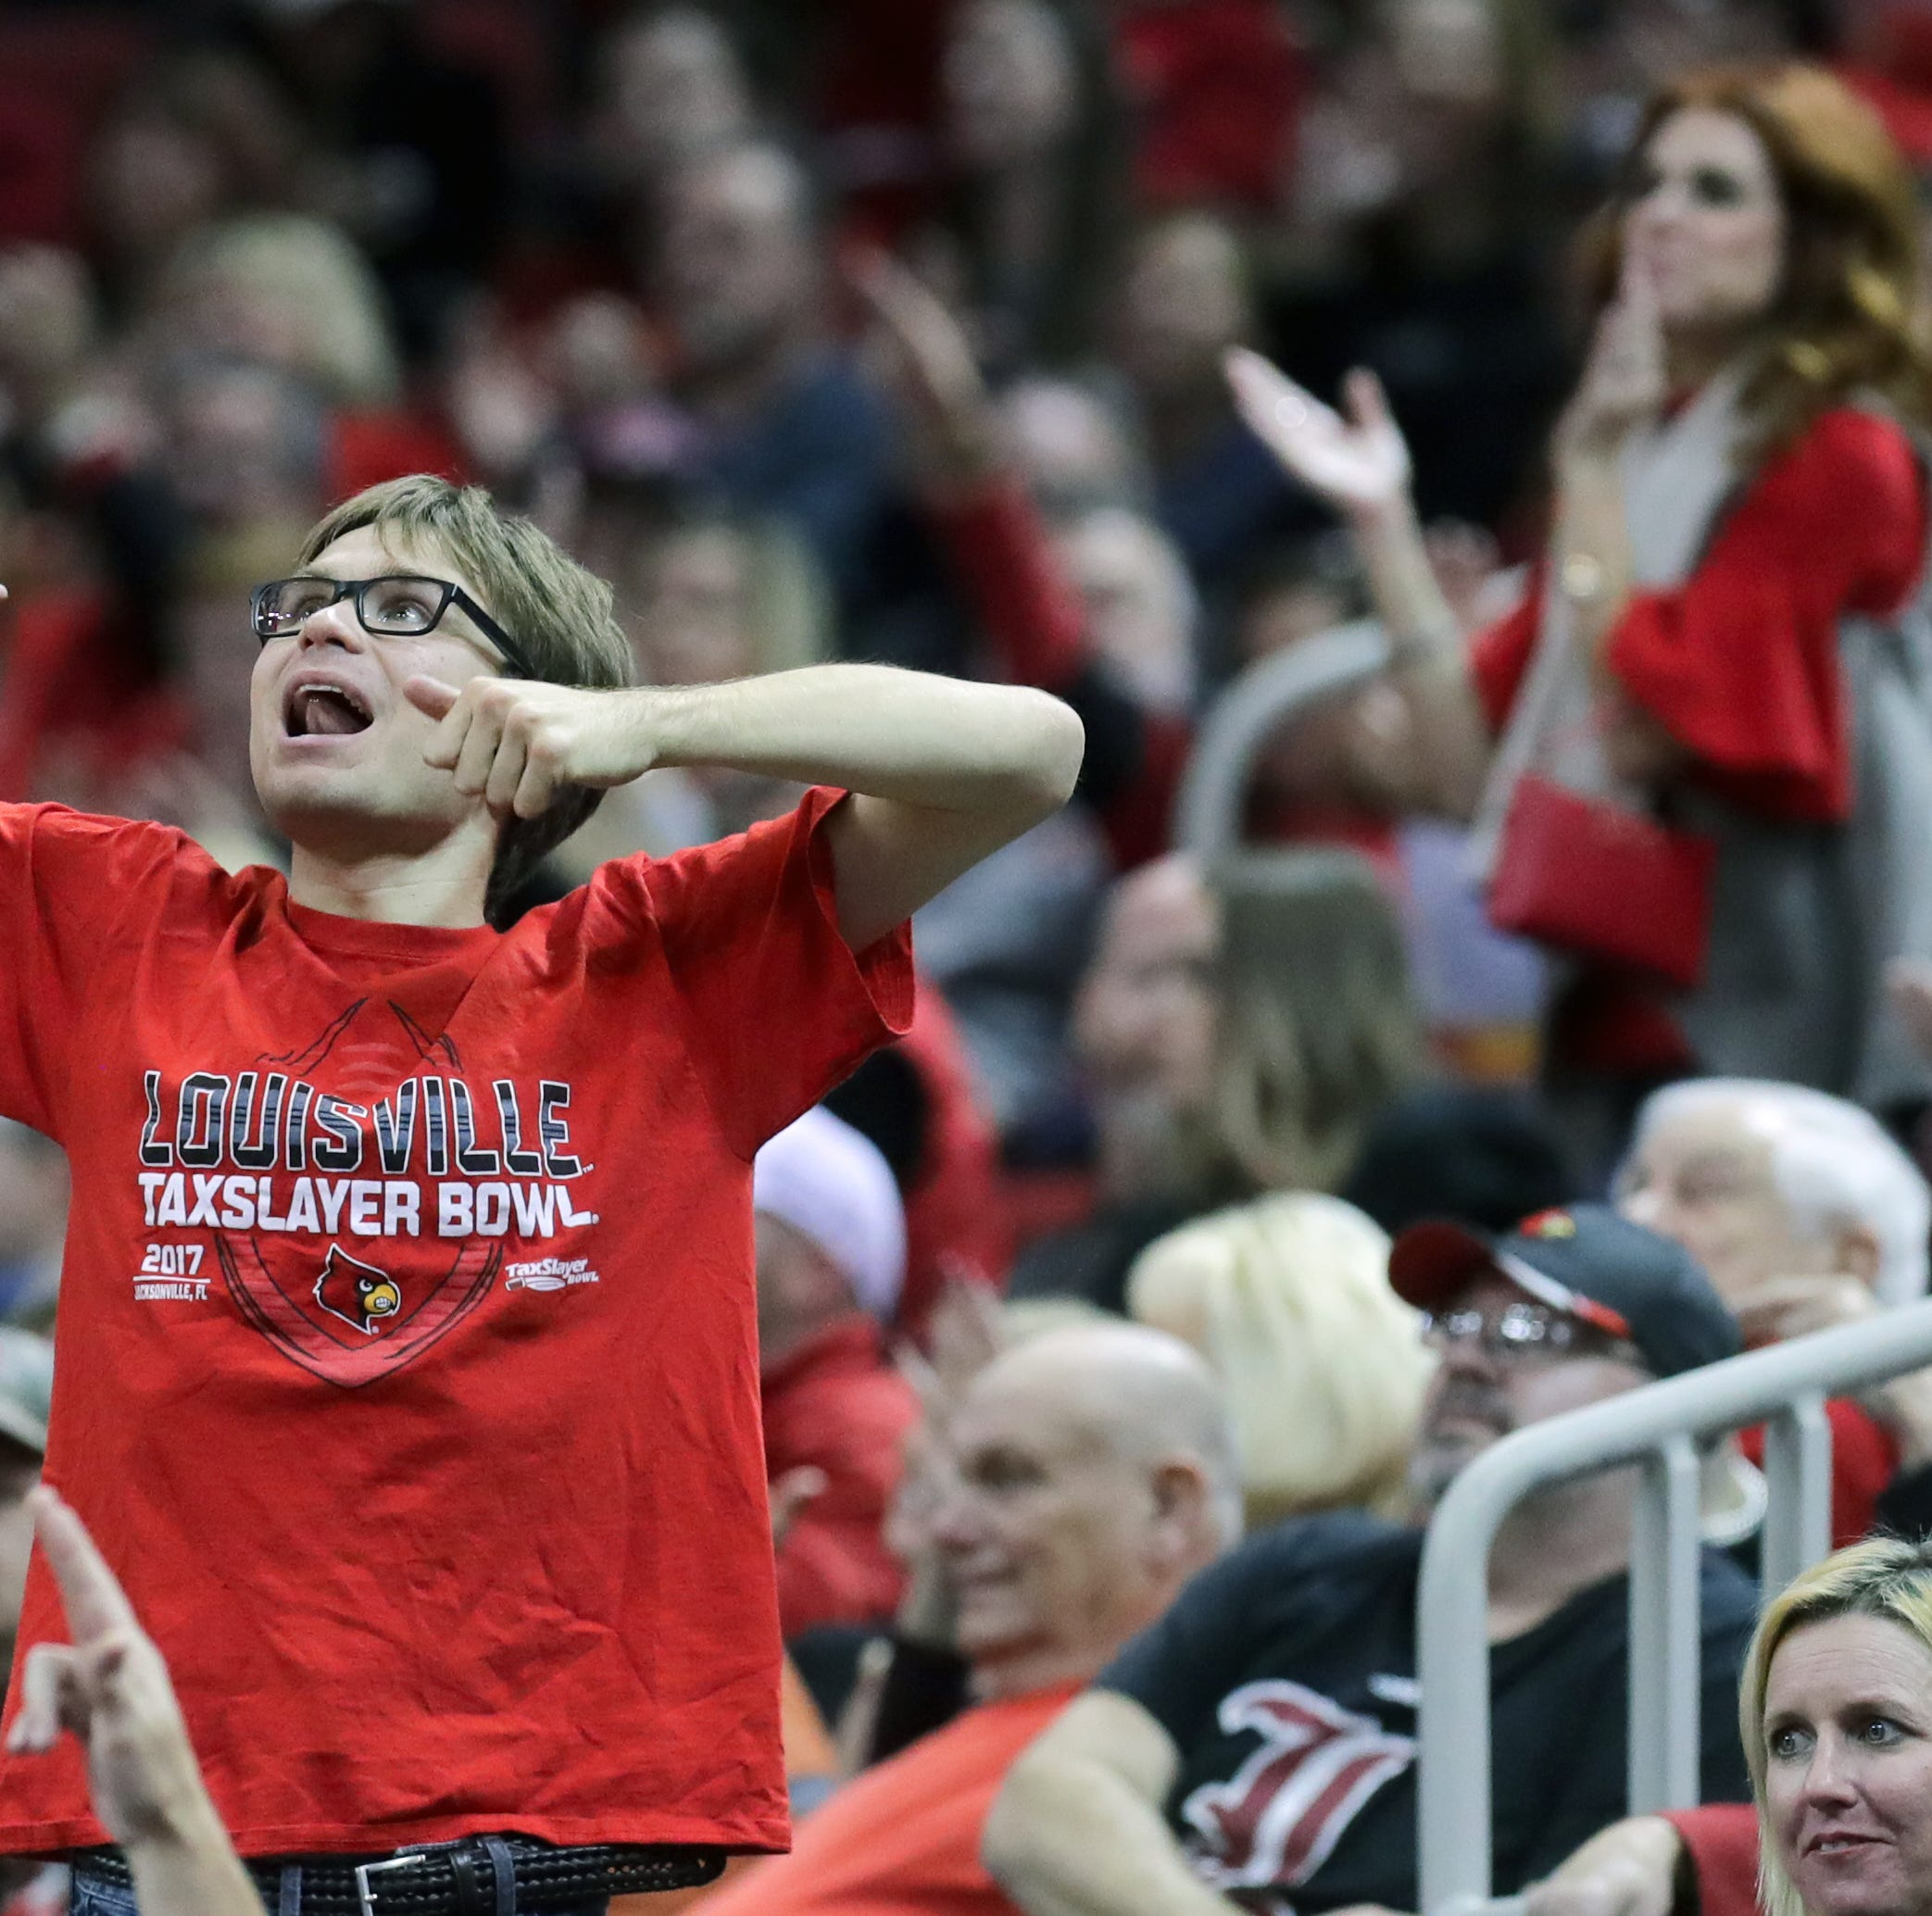 Why is Louisville basketball attendance down? Pricing is among the woes